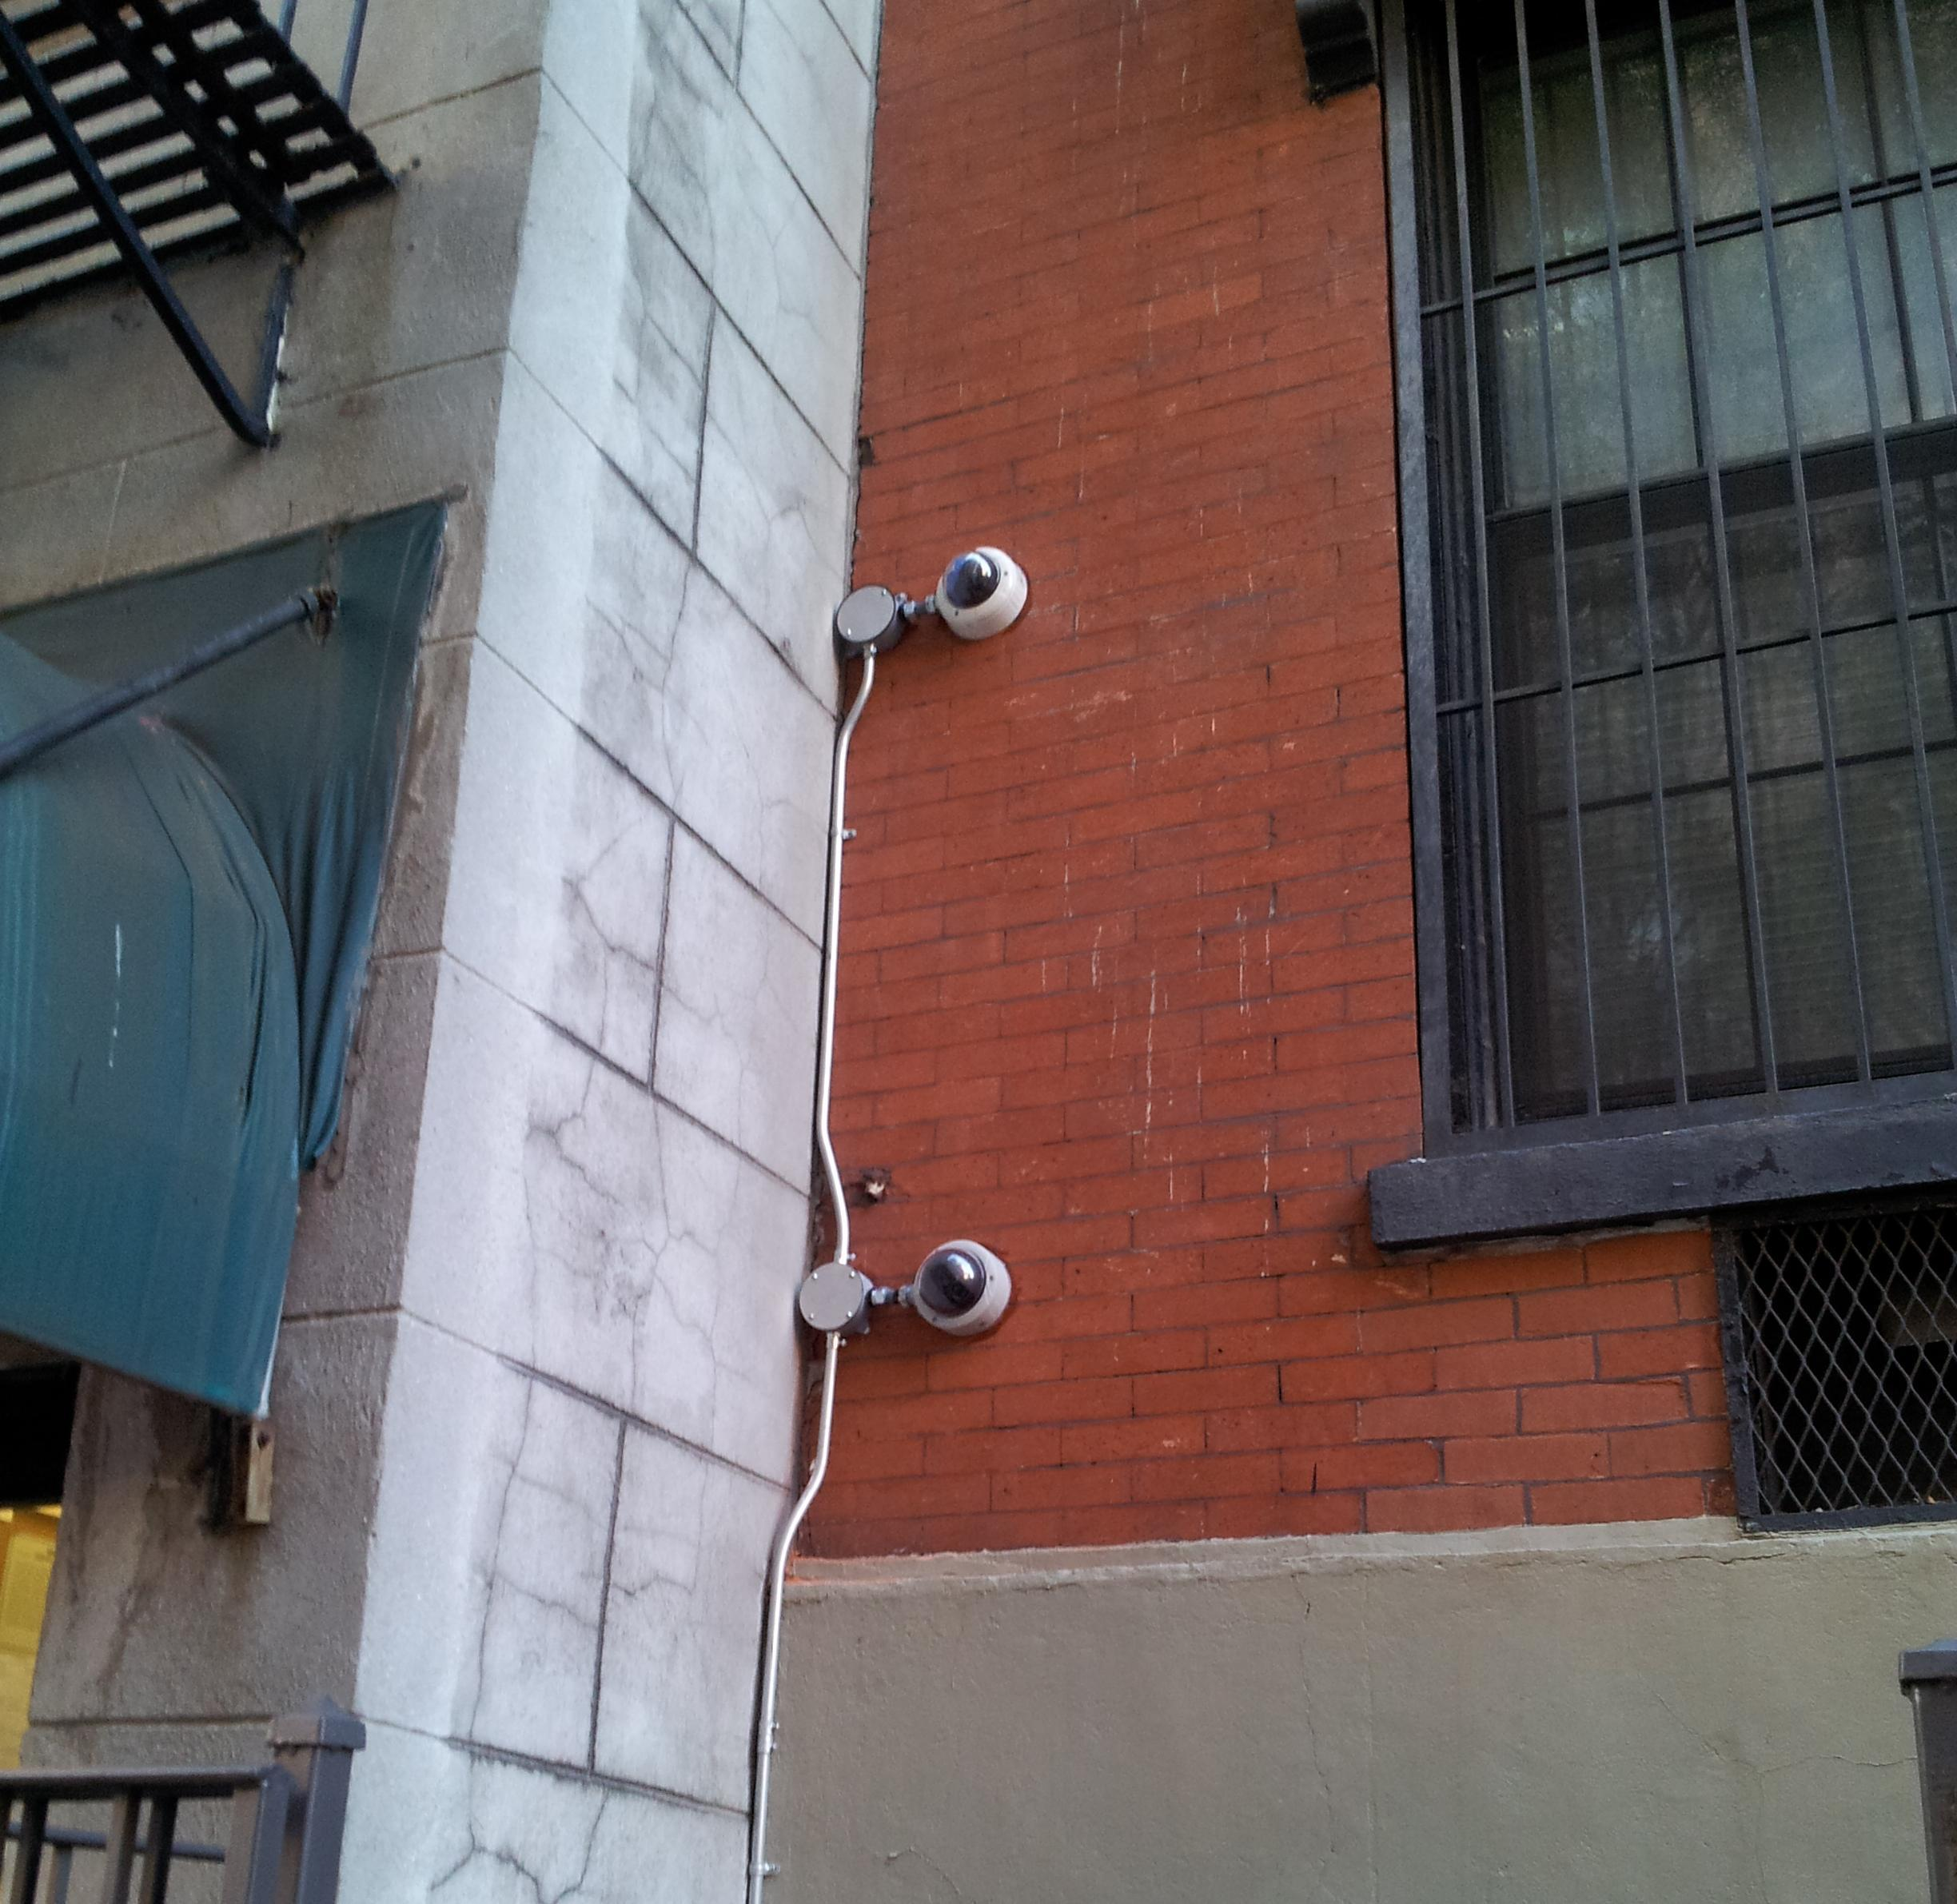 Aluminum pipes to protect two Honeywell CCTV cameras mounted on building wall of residential building of Upper West Side in Manhattan, NY